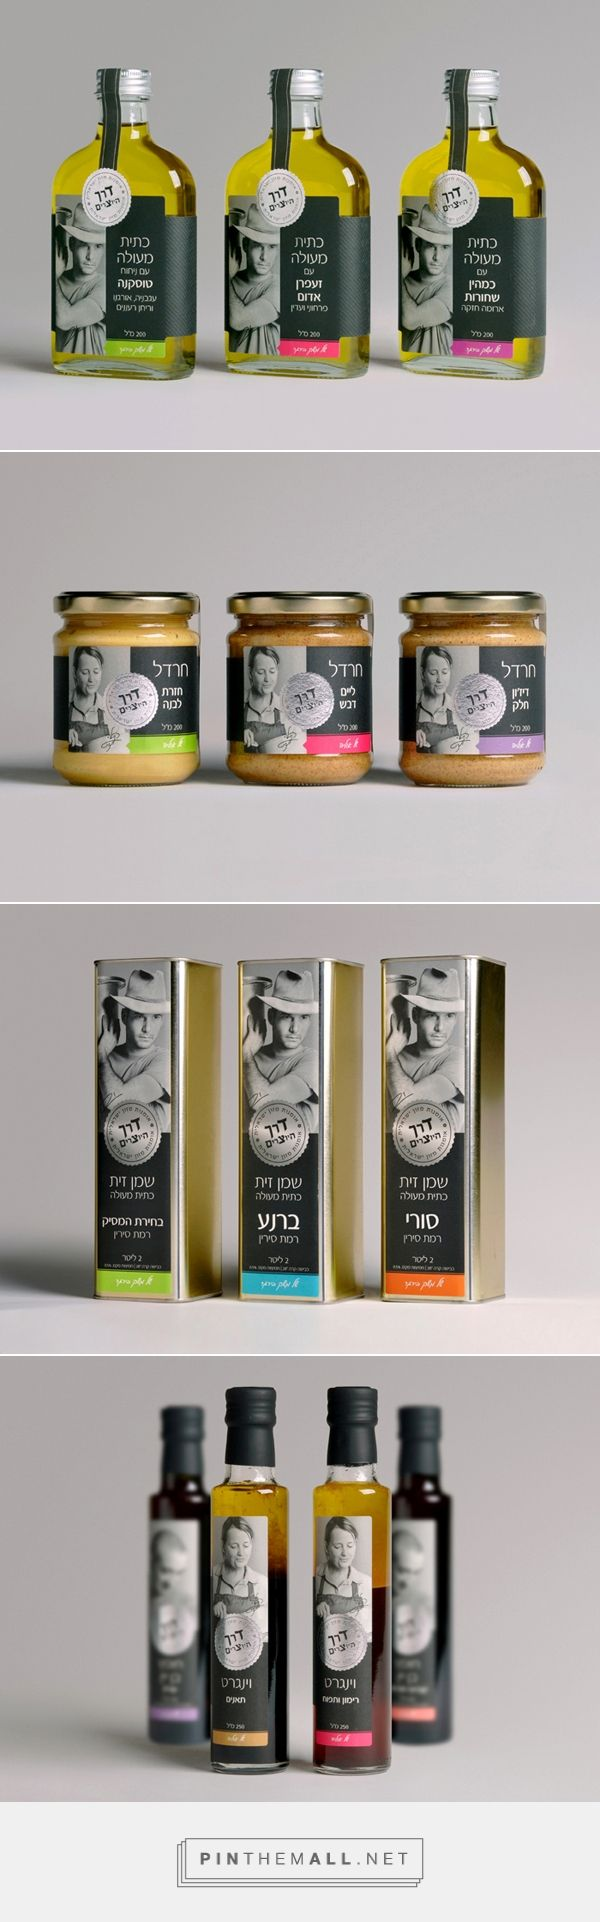 Derech Hayotzrim by Israel Yosseph curated by Packaging Diva PD. A beautiful collection of gourmet food packaging created via http://www.packagingoftheworld.com/2012/10/derech-hayotzrim.html